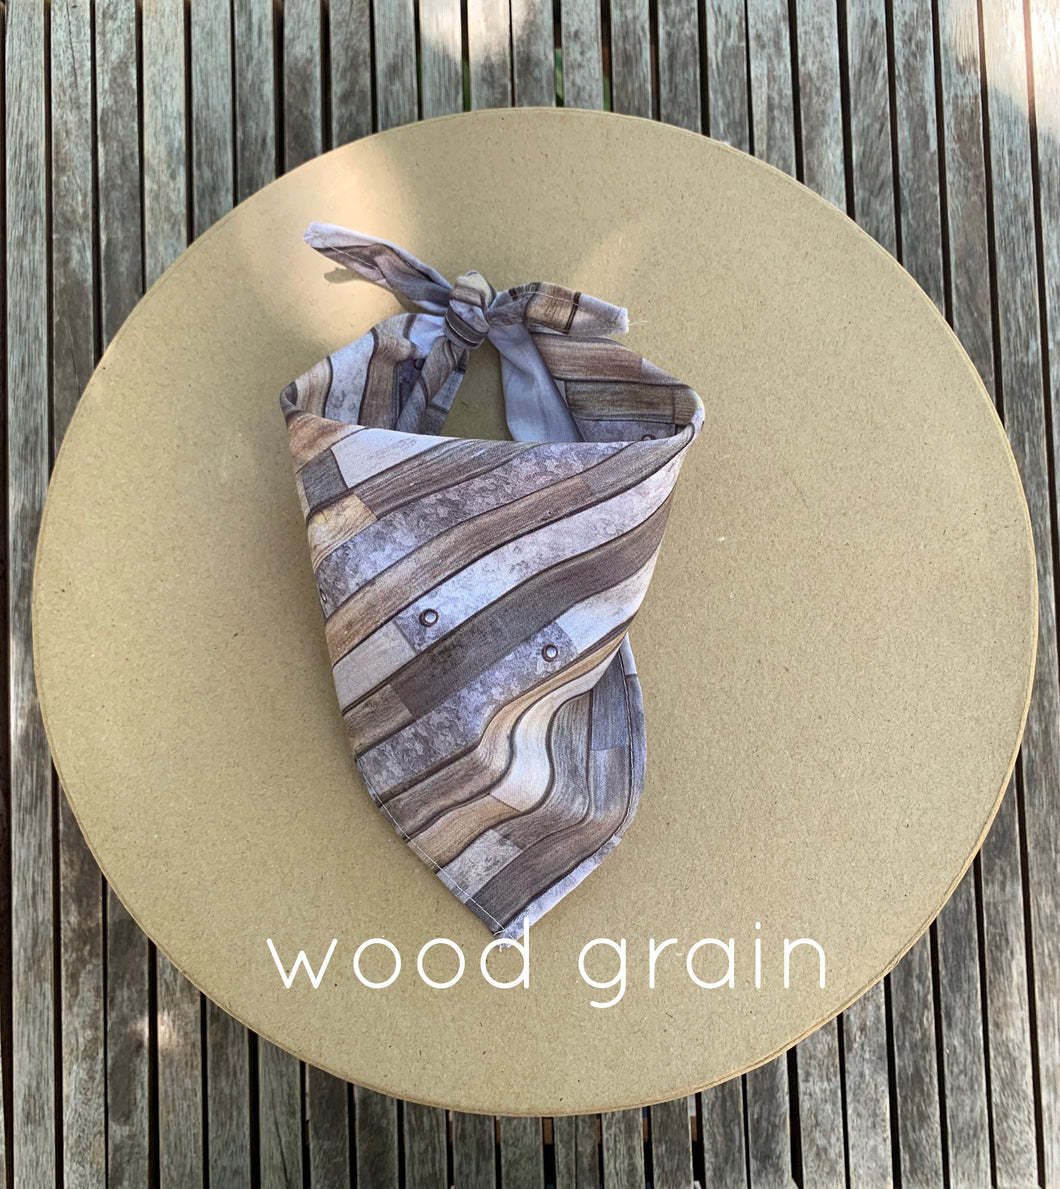 Pictured on a coardboard circle, is a small dog bandana with wood grain print.